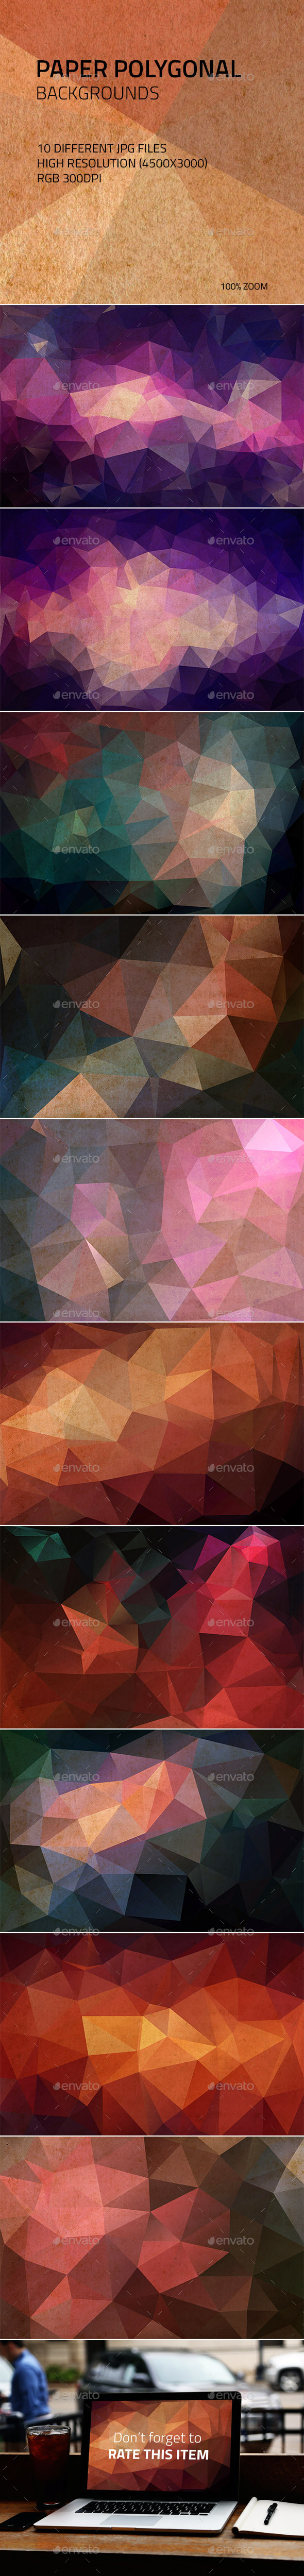 Paper Polygonal Backgrounds - Abstract Backgrounds